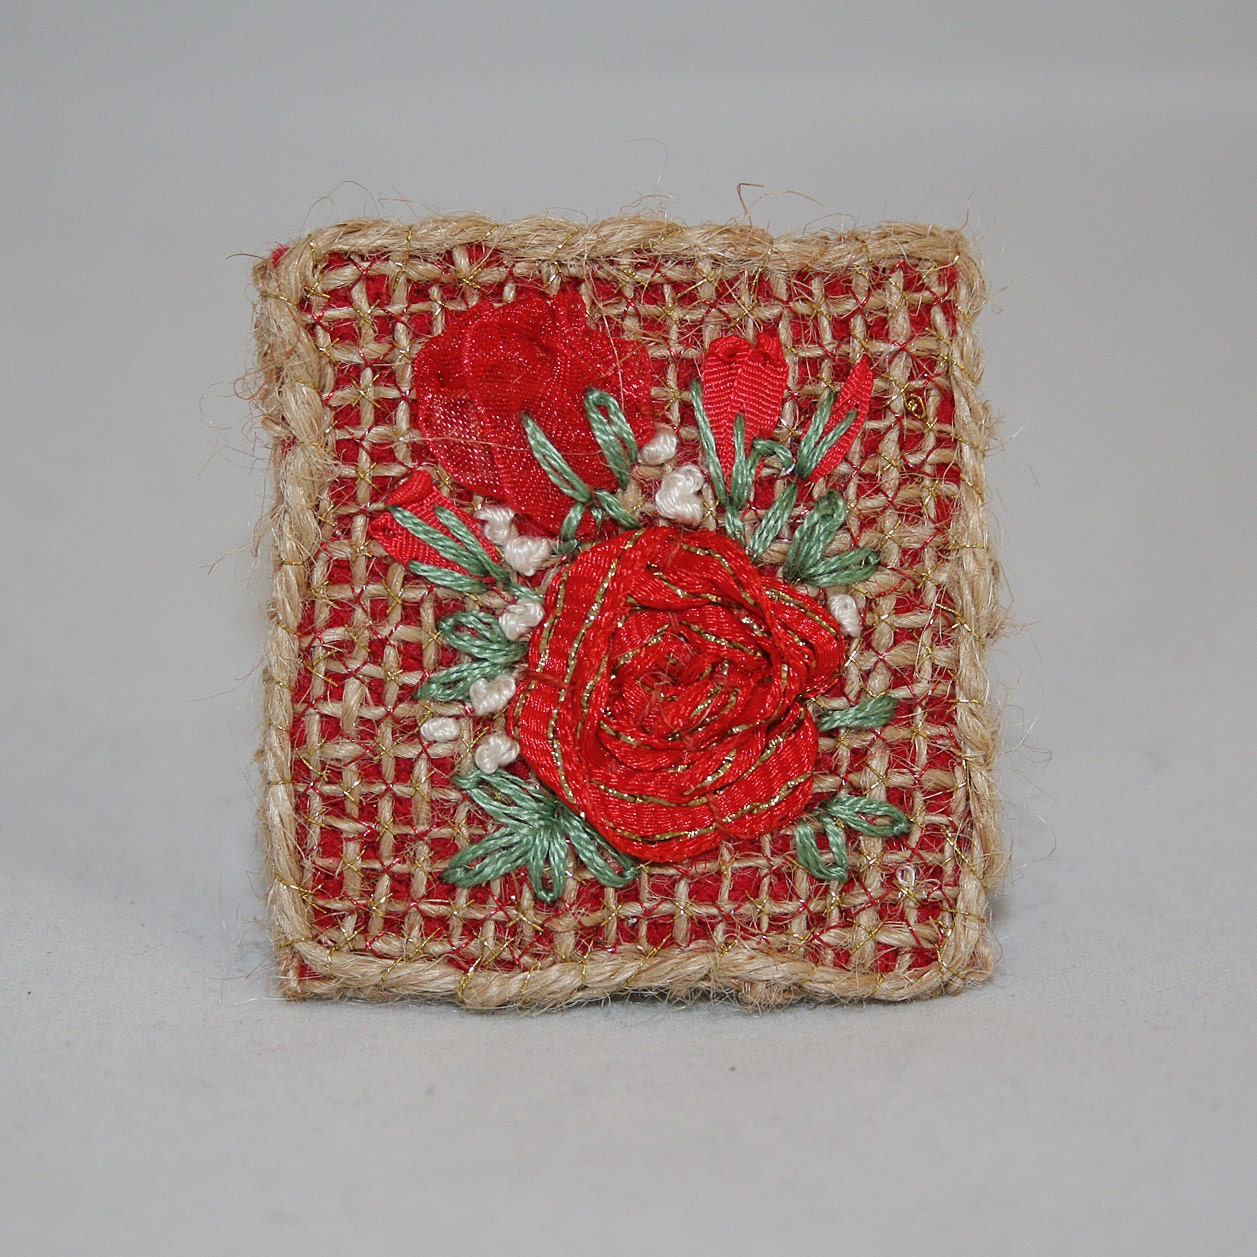 Embroidered brooch red roses on hessian